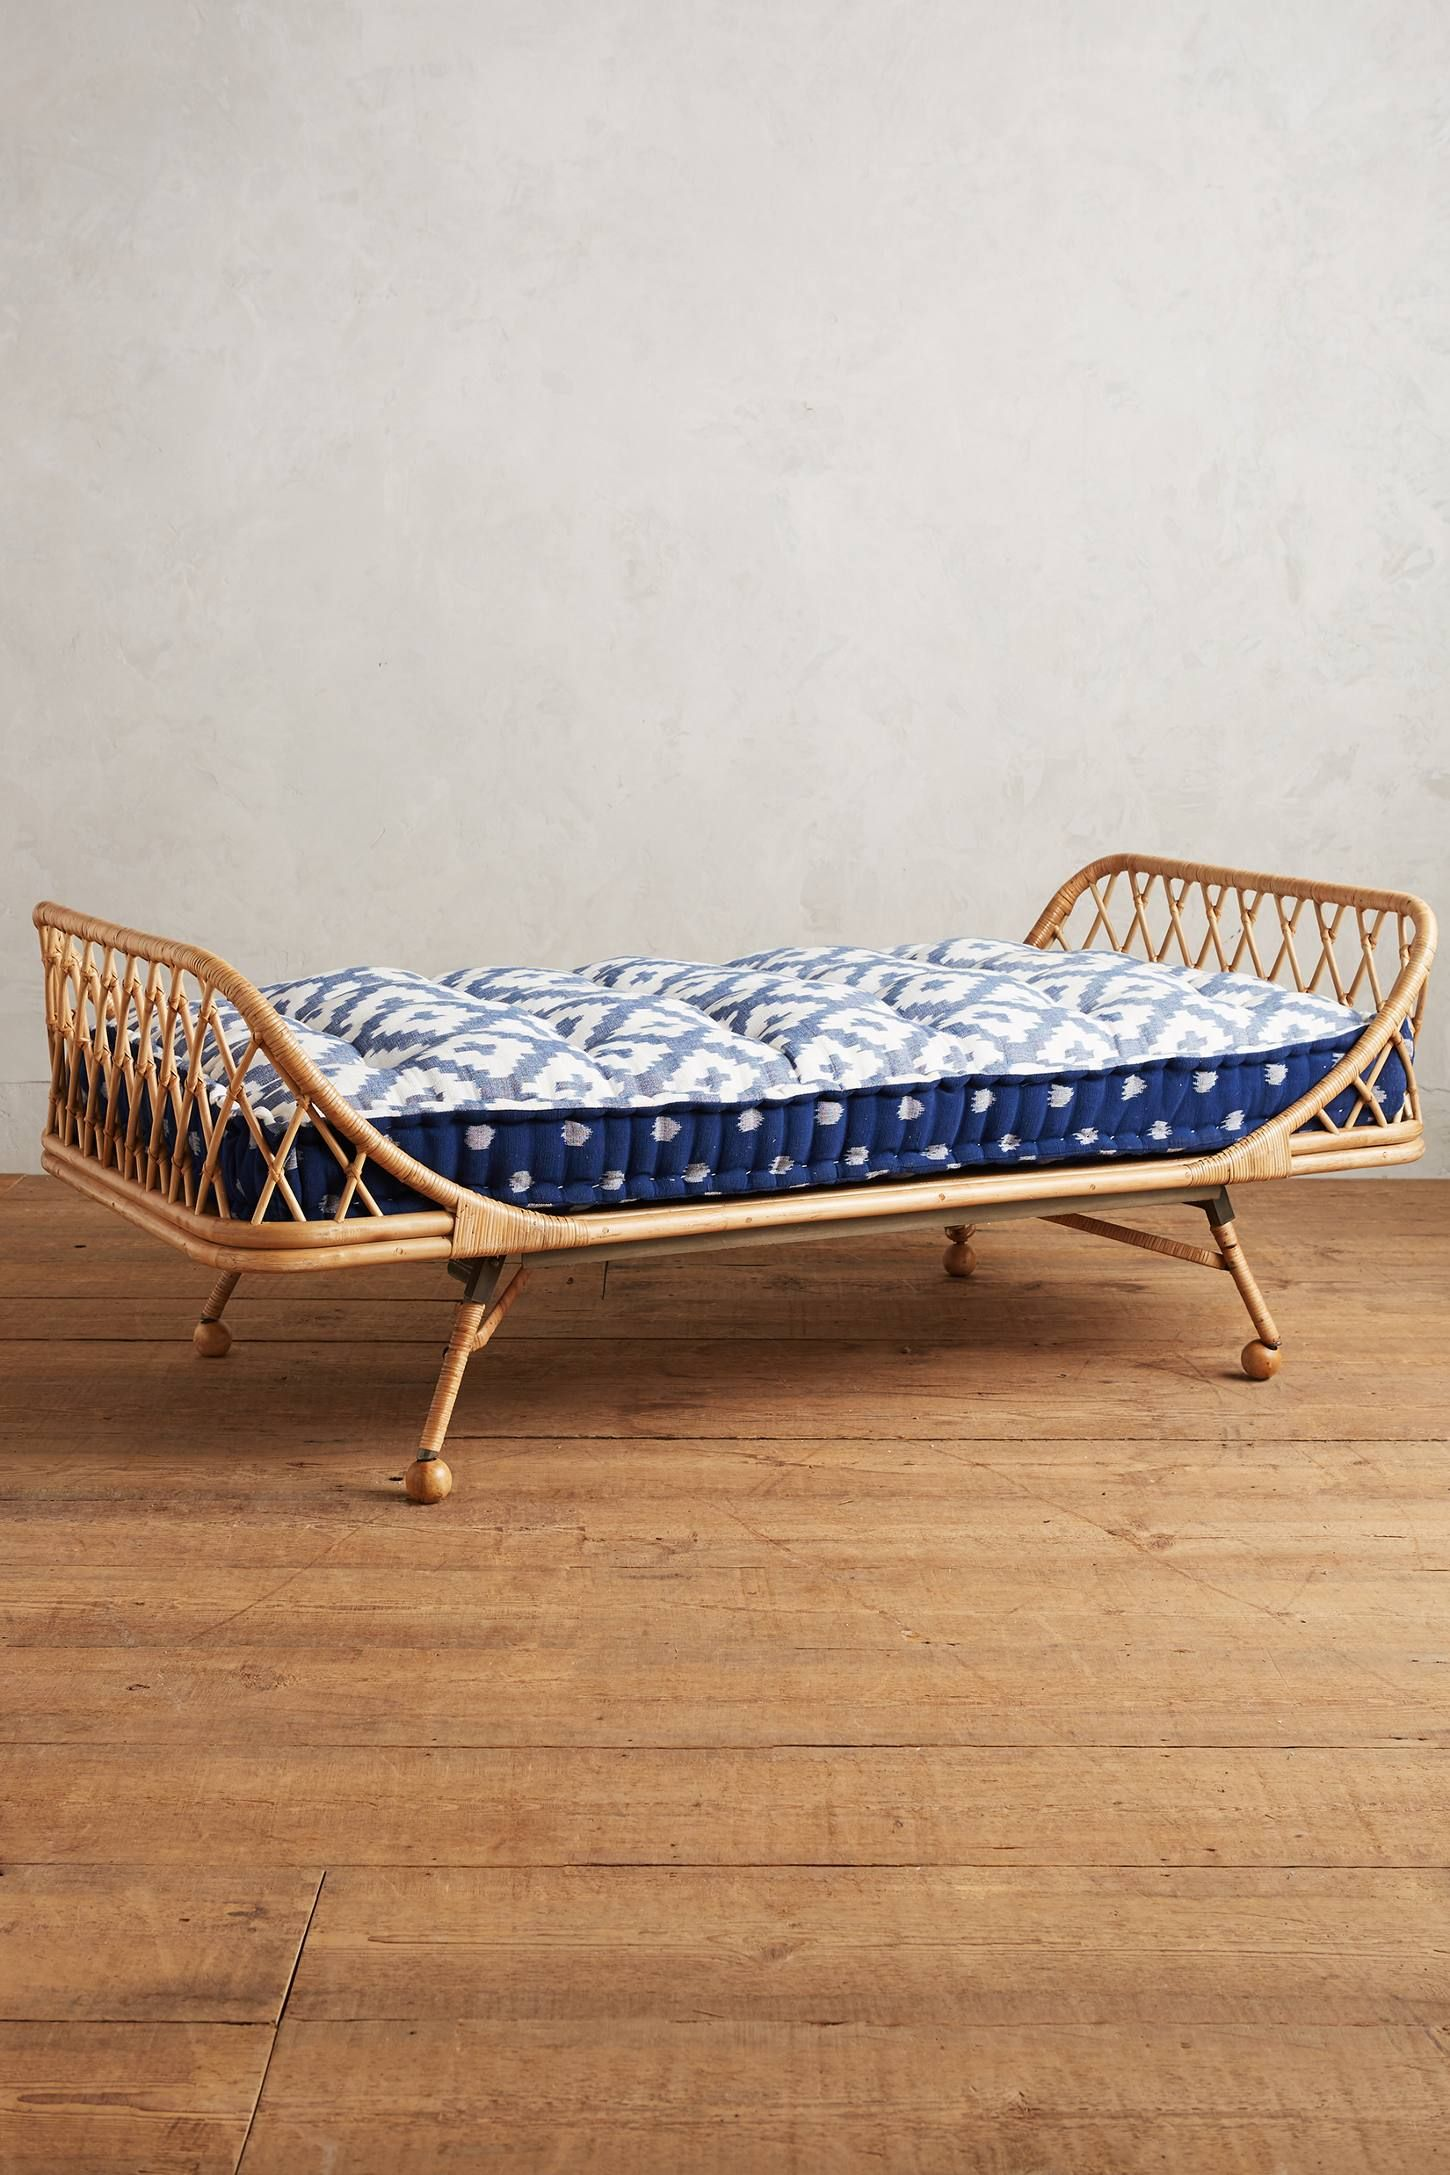 Pari Rattan Daybed   GGK   Pena Play Guest Room   Pinterest   Daybed     Shop the Pari Rattan Daybed and more Anthropologie at Anthropologie today   Read customer reviews  discover product details and more